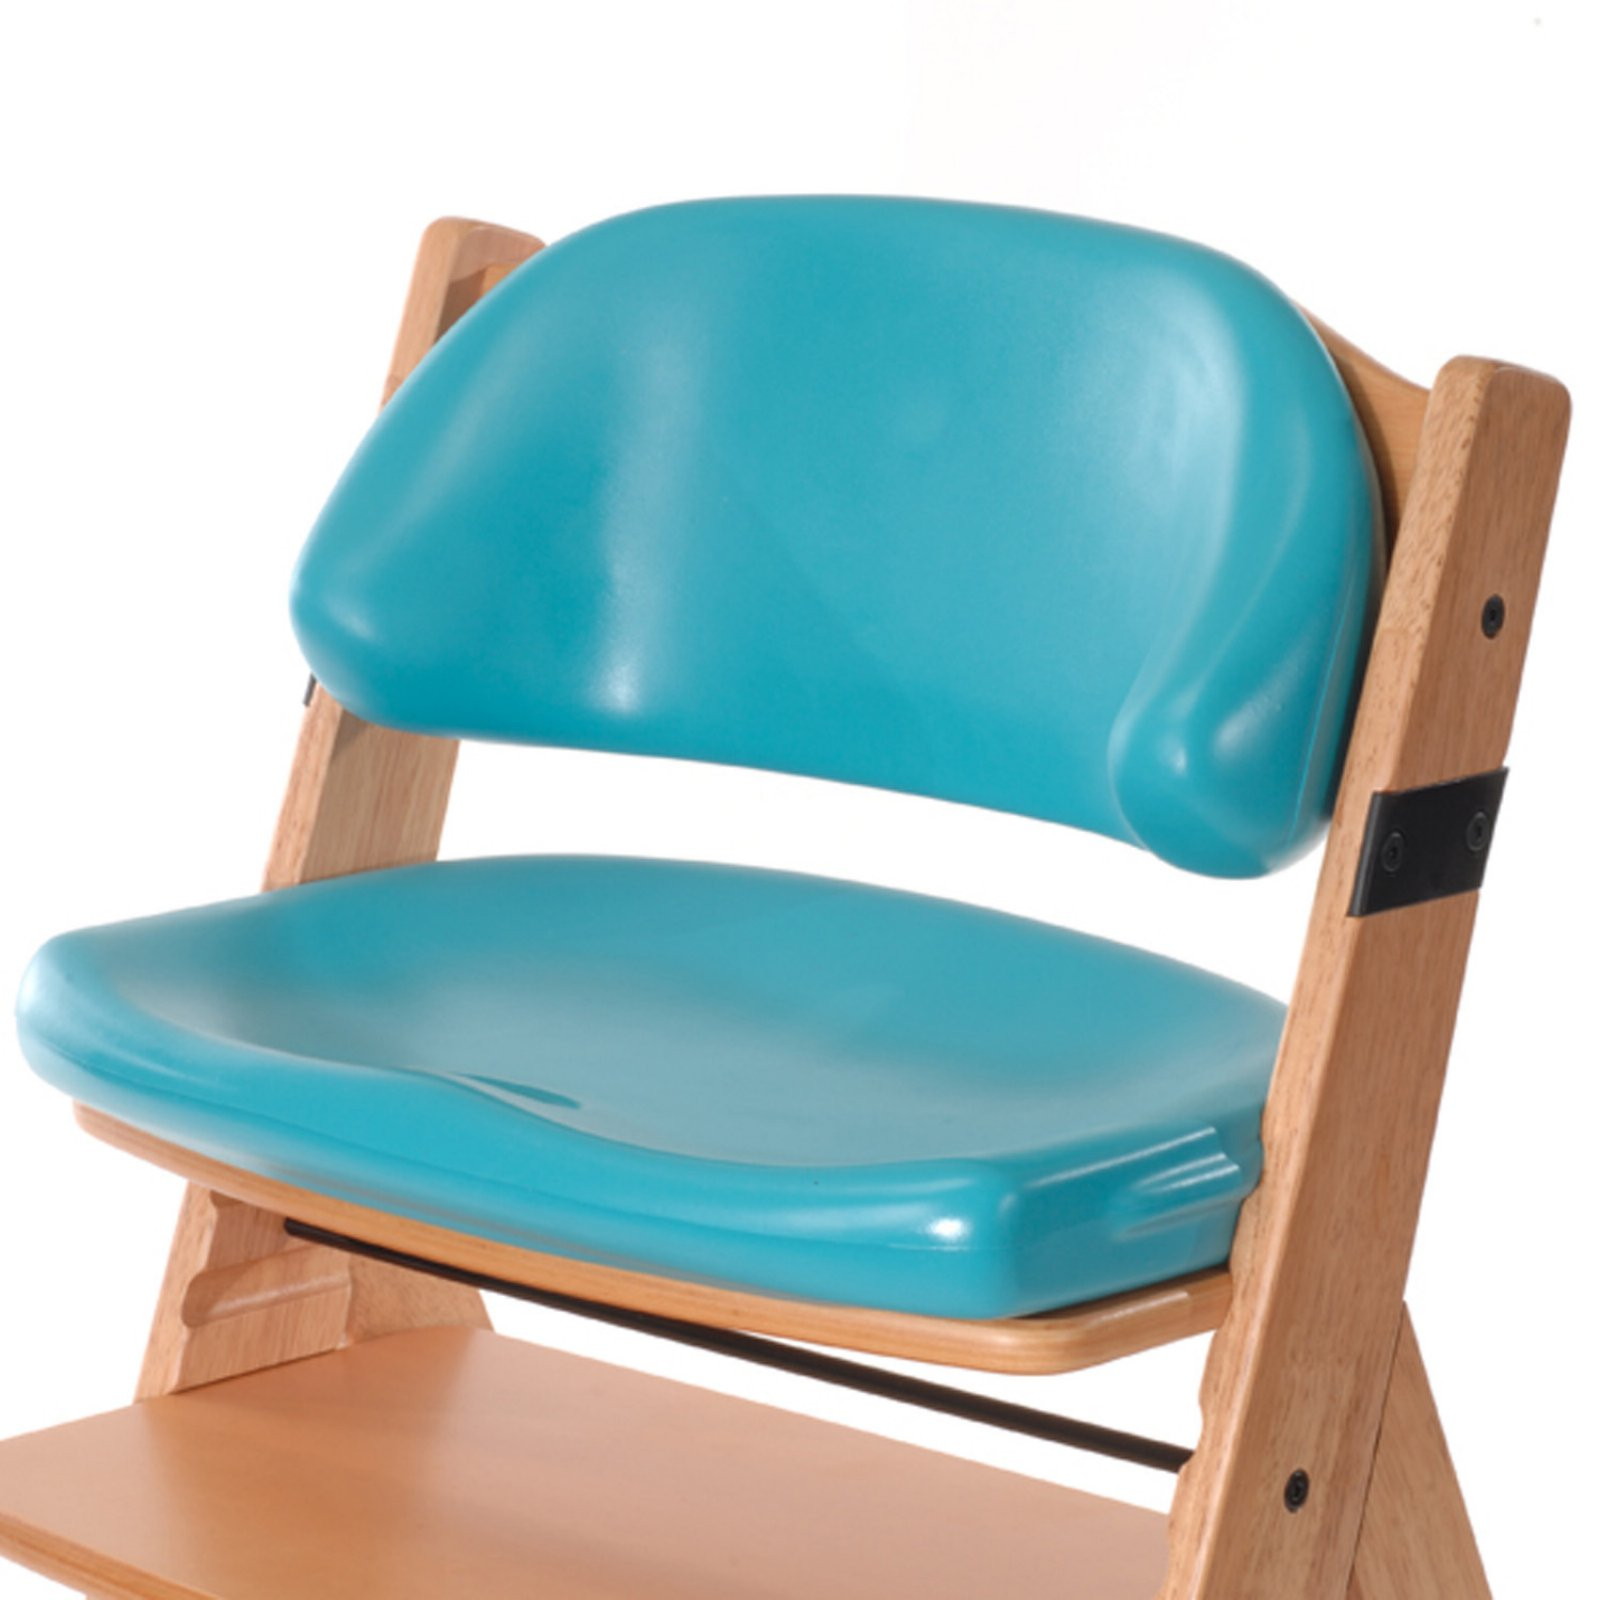 Keekaroo Height Right Comfort Cushion Seat & Back Set - Aqua